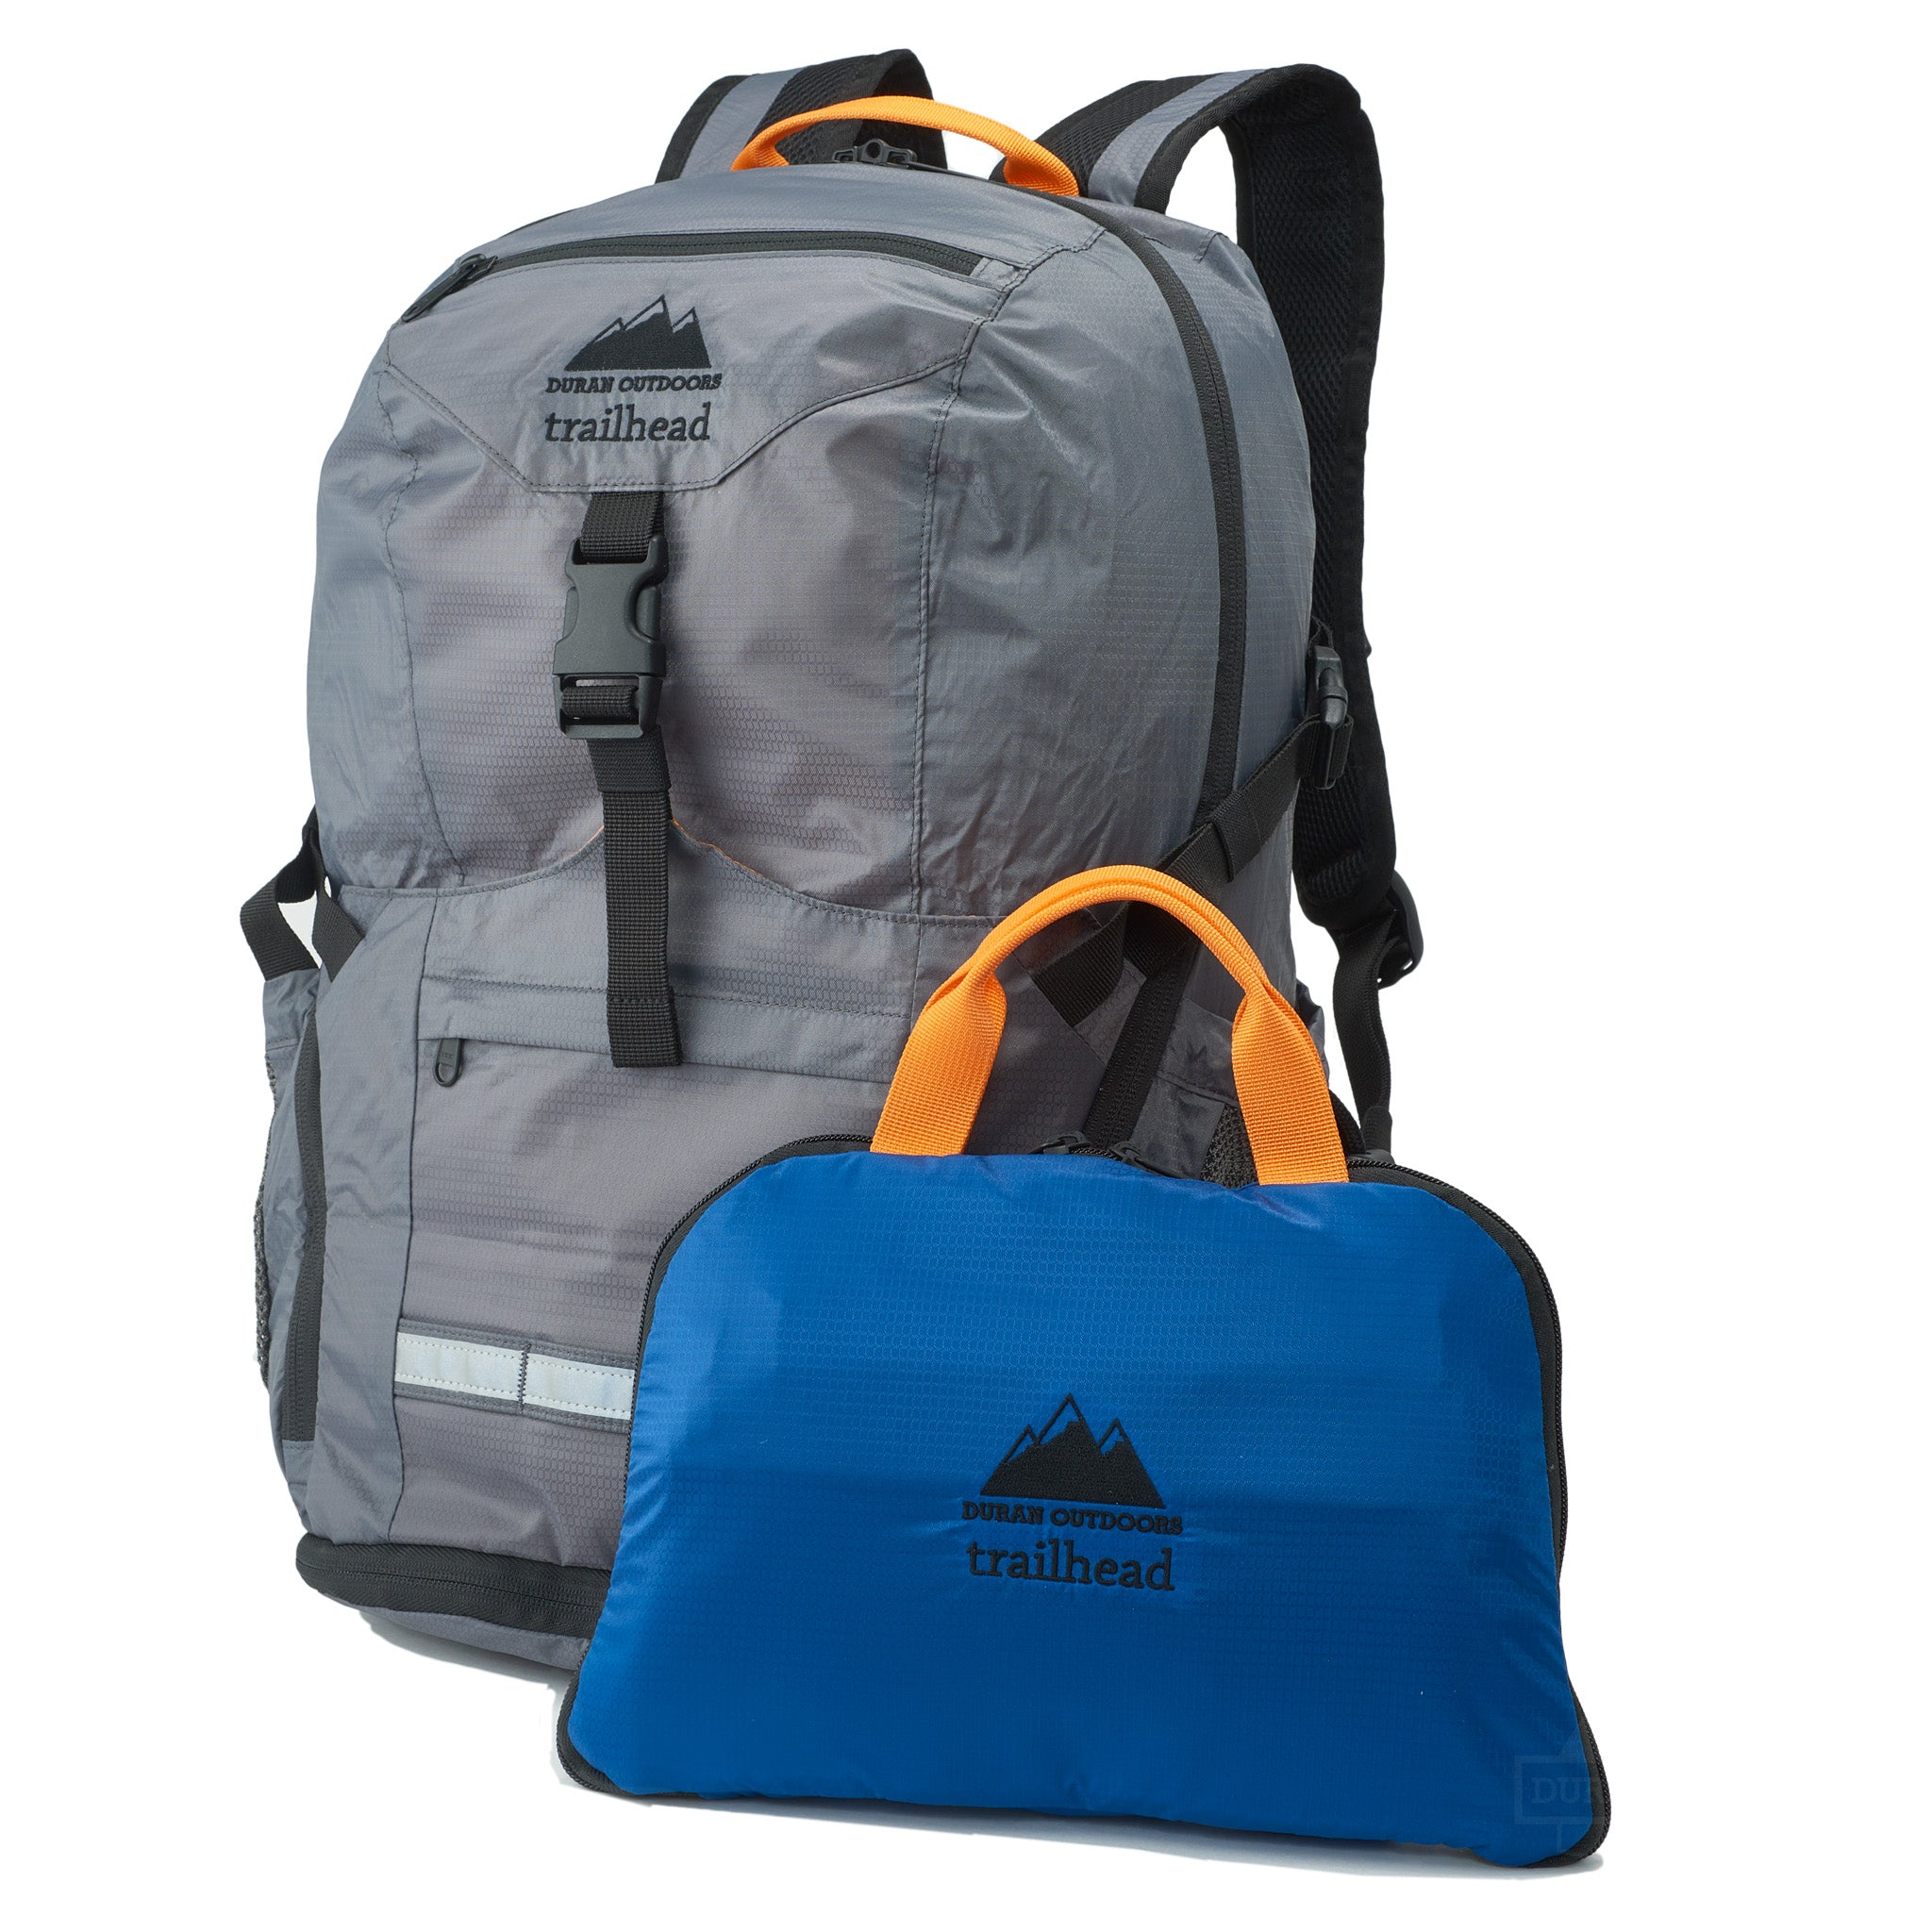 Trailhead Packable Daypack